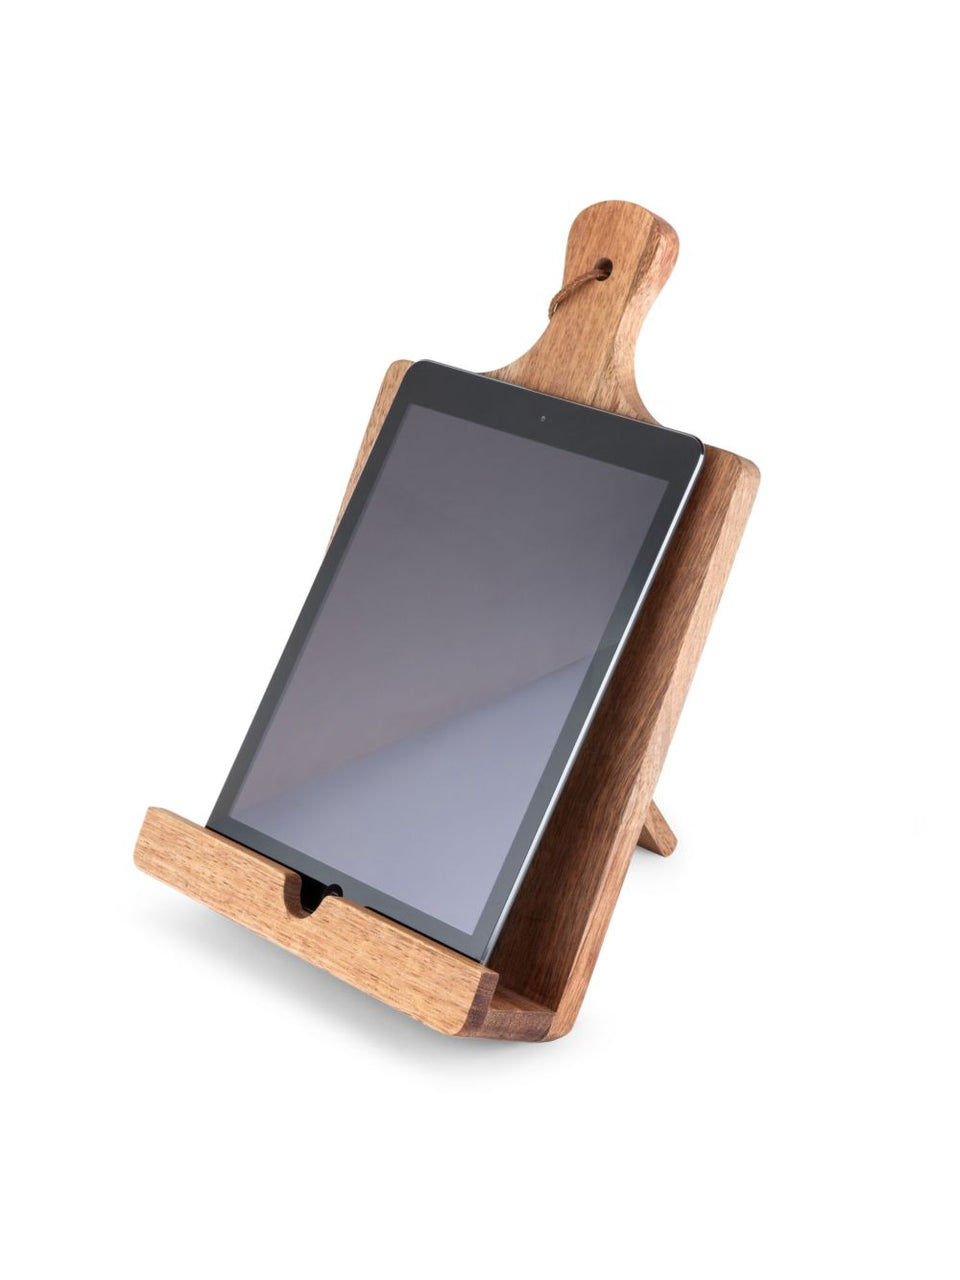 Acacia Wood Tablet Cooking Stand